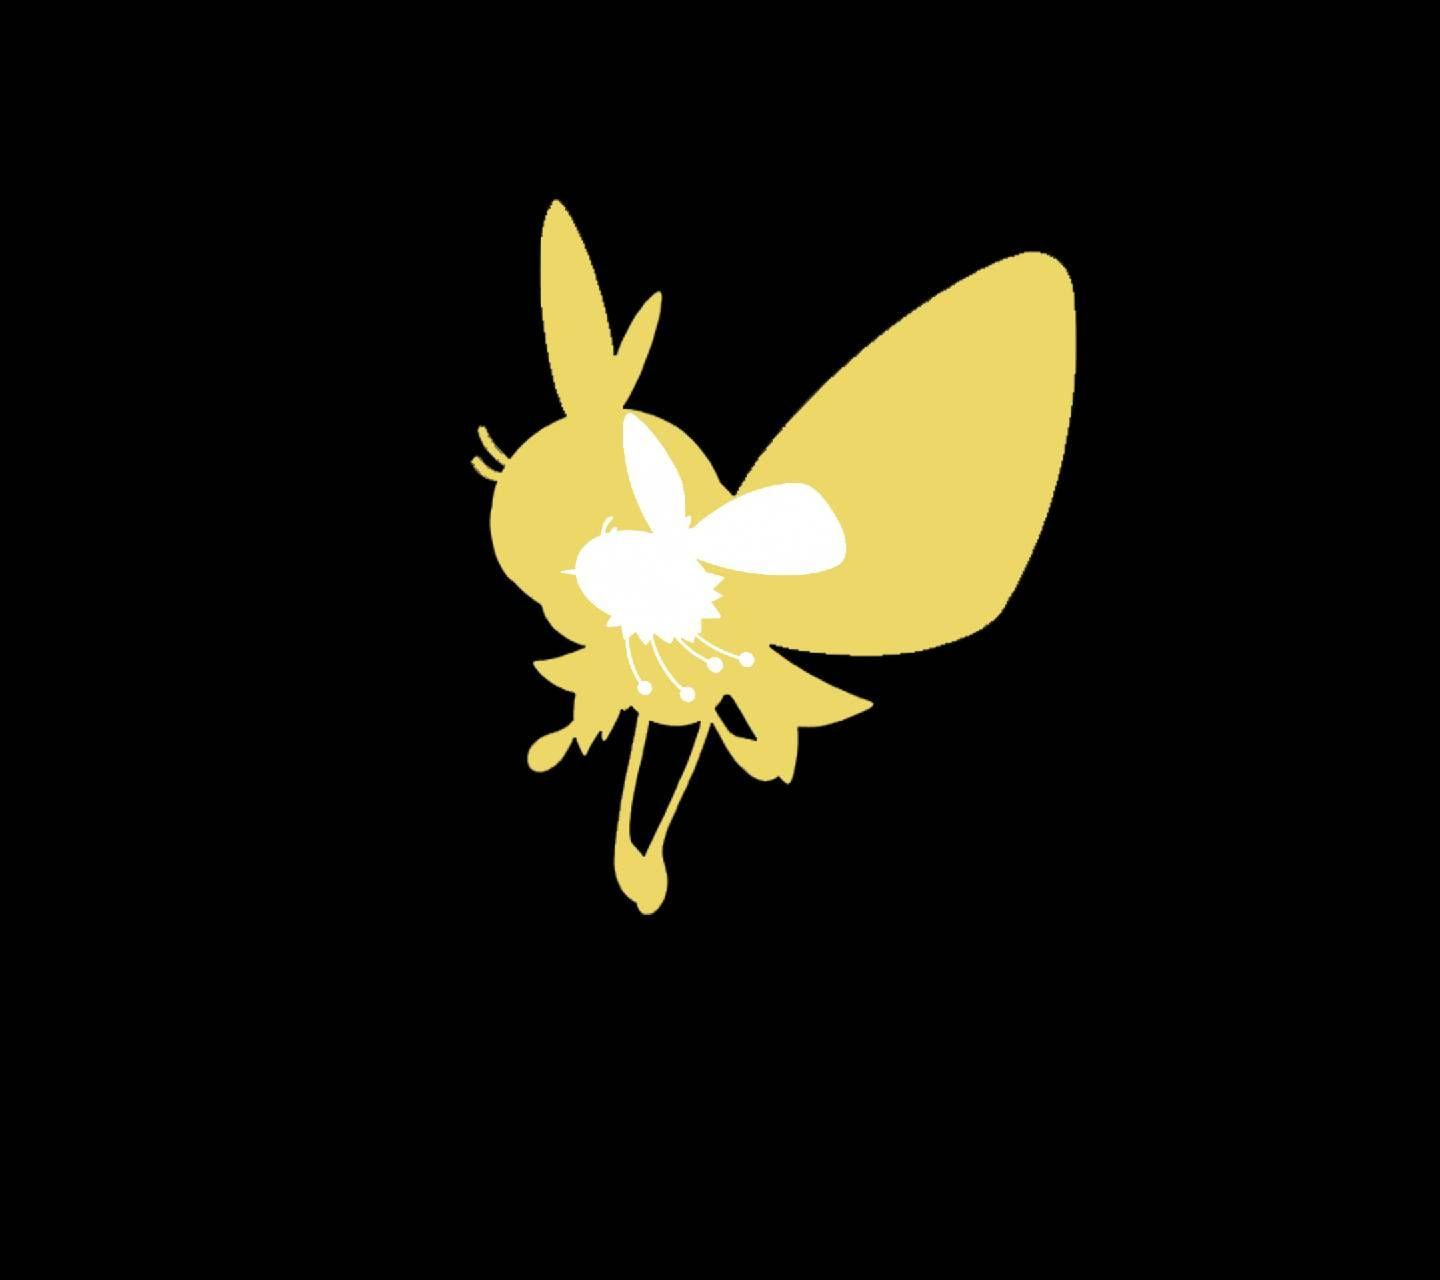 Cutiefly Evolution Wallpaper by LeoheartRX - 83 - Free on ZEDGE™